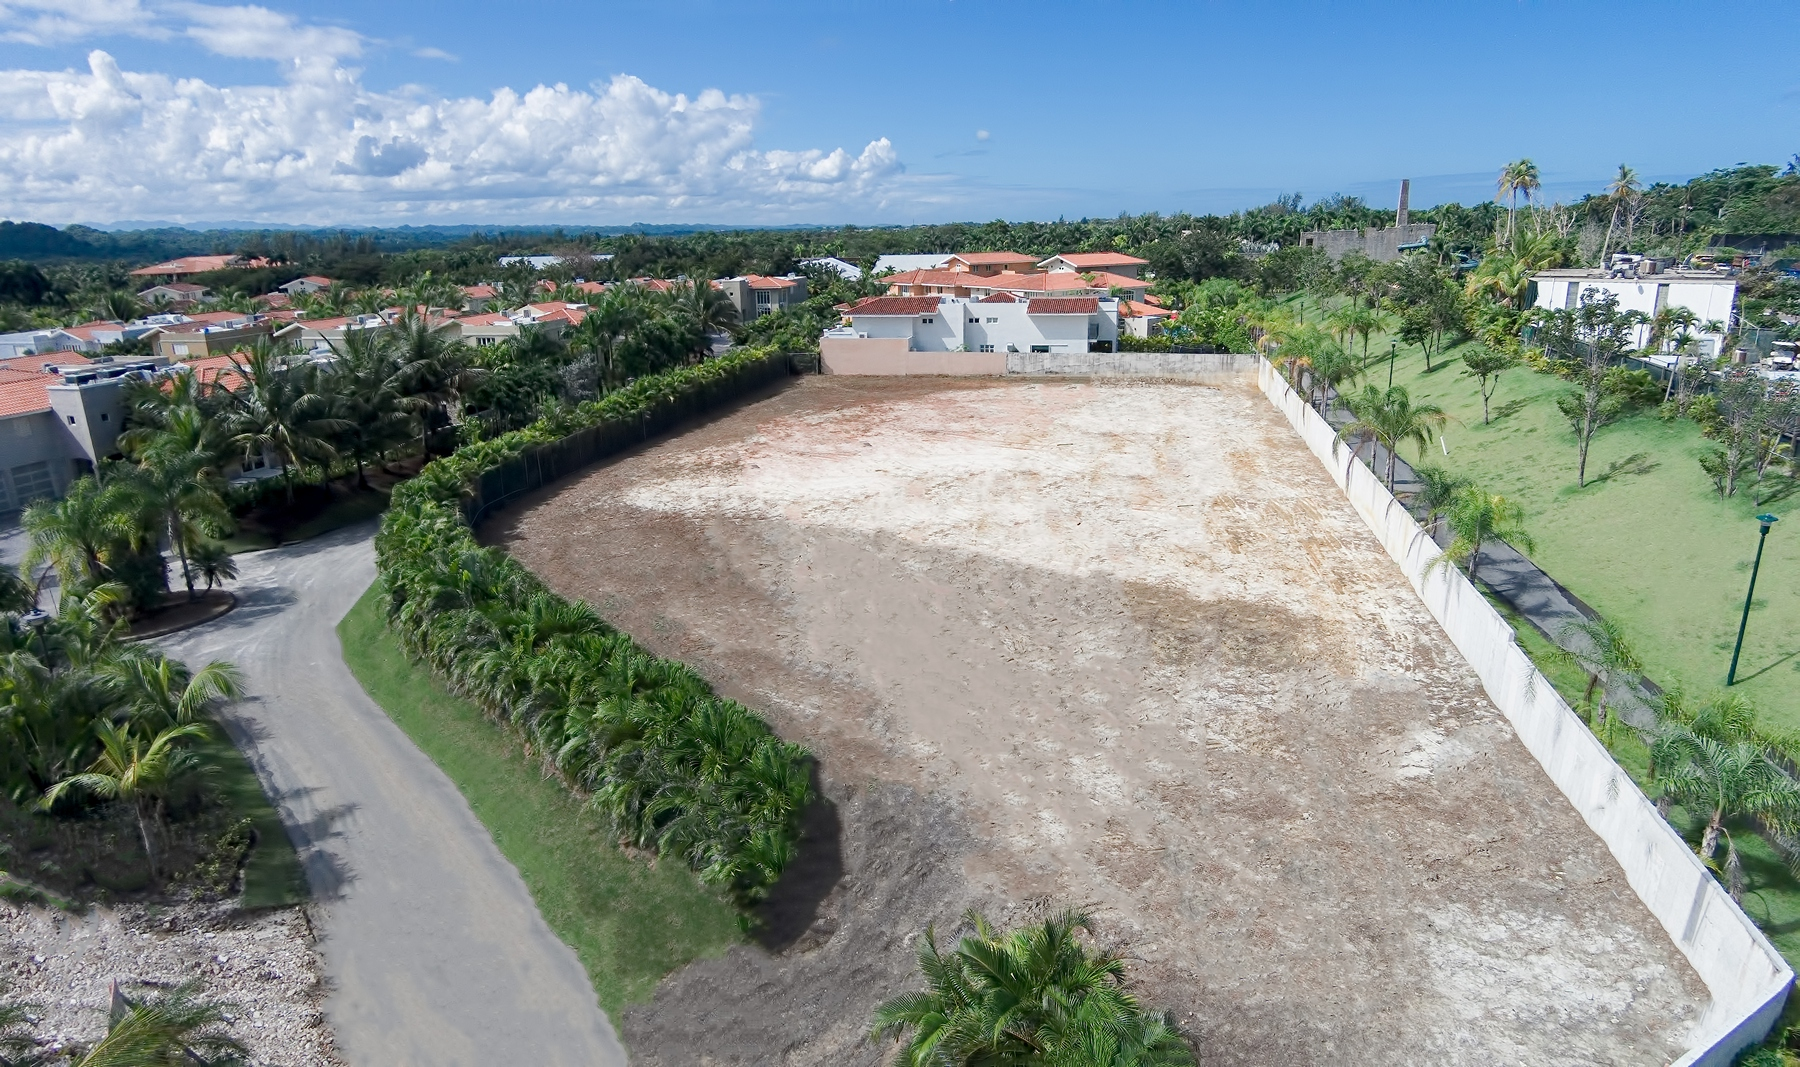 Οικόπεδο για την Πώληση στο Dorado Beach East Unique Lot Opportunity 323 Dorado Beach East Dorado Beach, Puerto Rico 00646 Πουερτο Ρικο